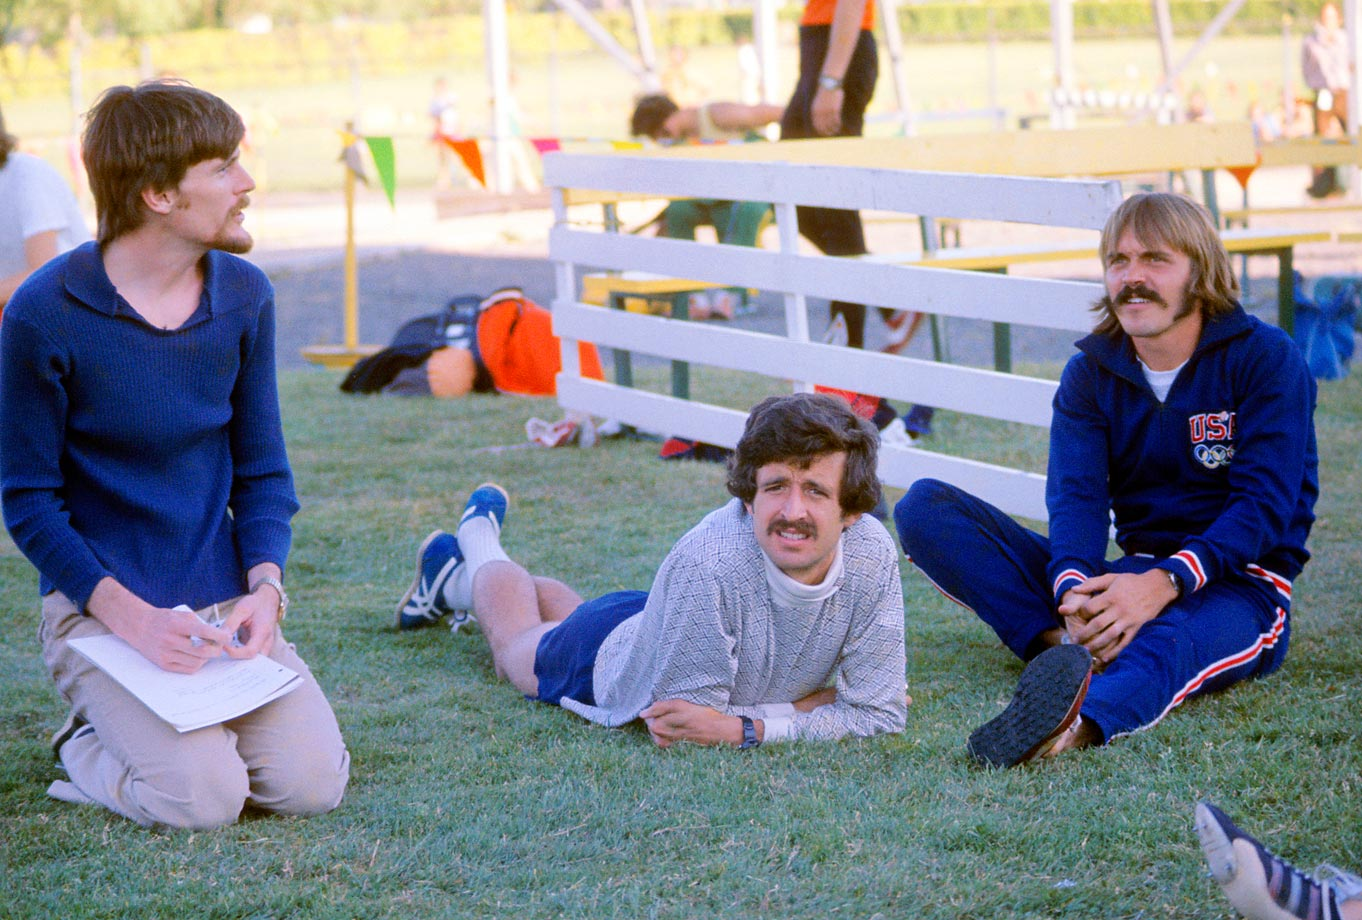 Steve Prefontaine (right), Frank Shorter (center) and Sports Illustrated writer Kenny Moore before the 5,000-meter race at the Finland Track meet in 1975.